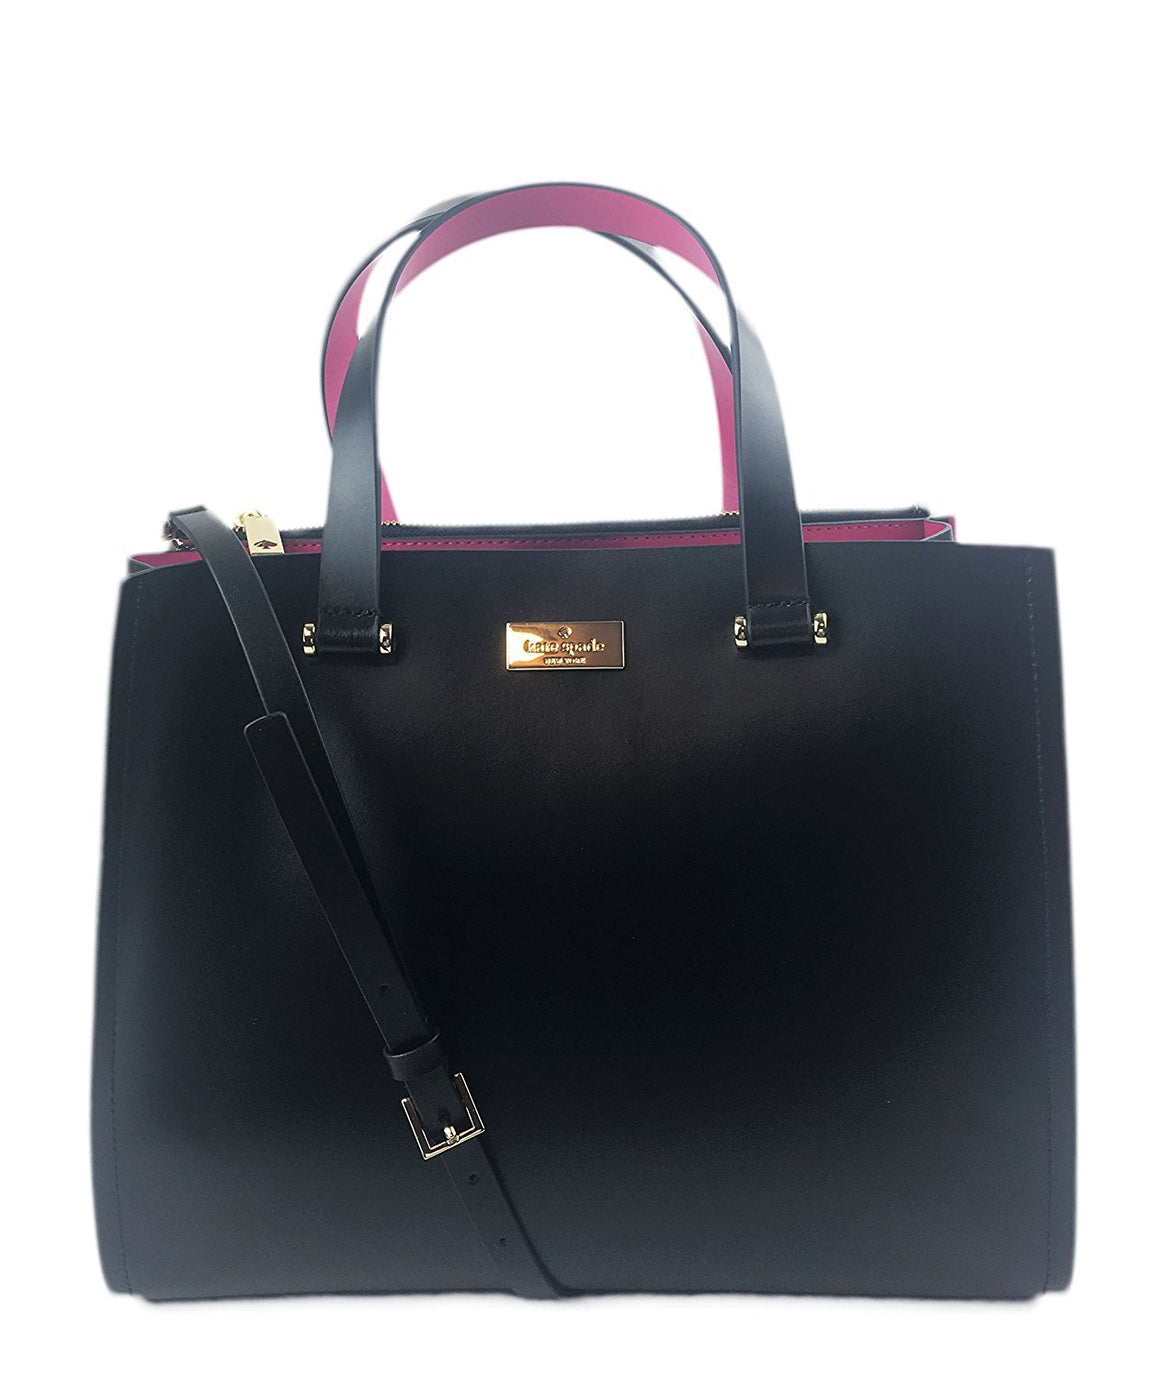 Kate Spade WKRU4197 New York Arbour Hill Krya Handbag Wkru4197 Womens Handbags Kate Spade